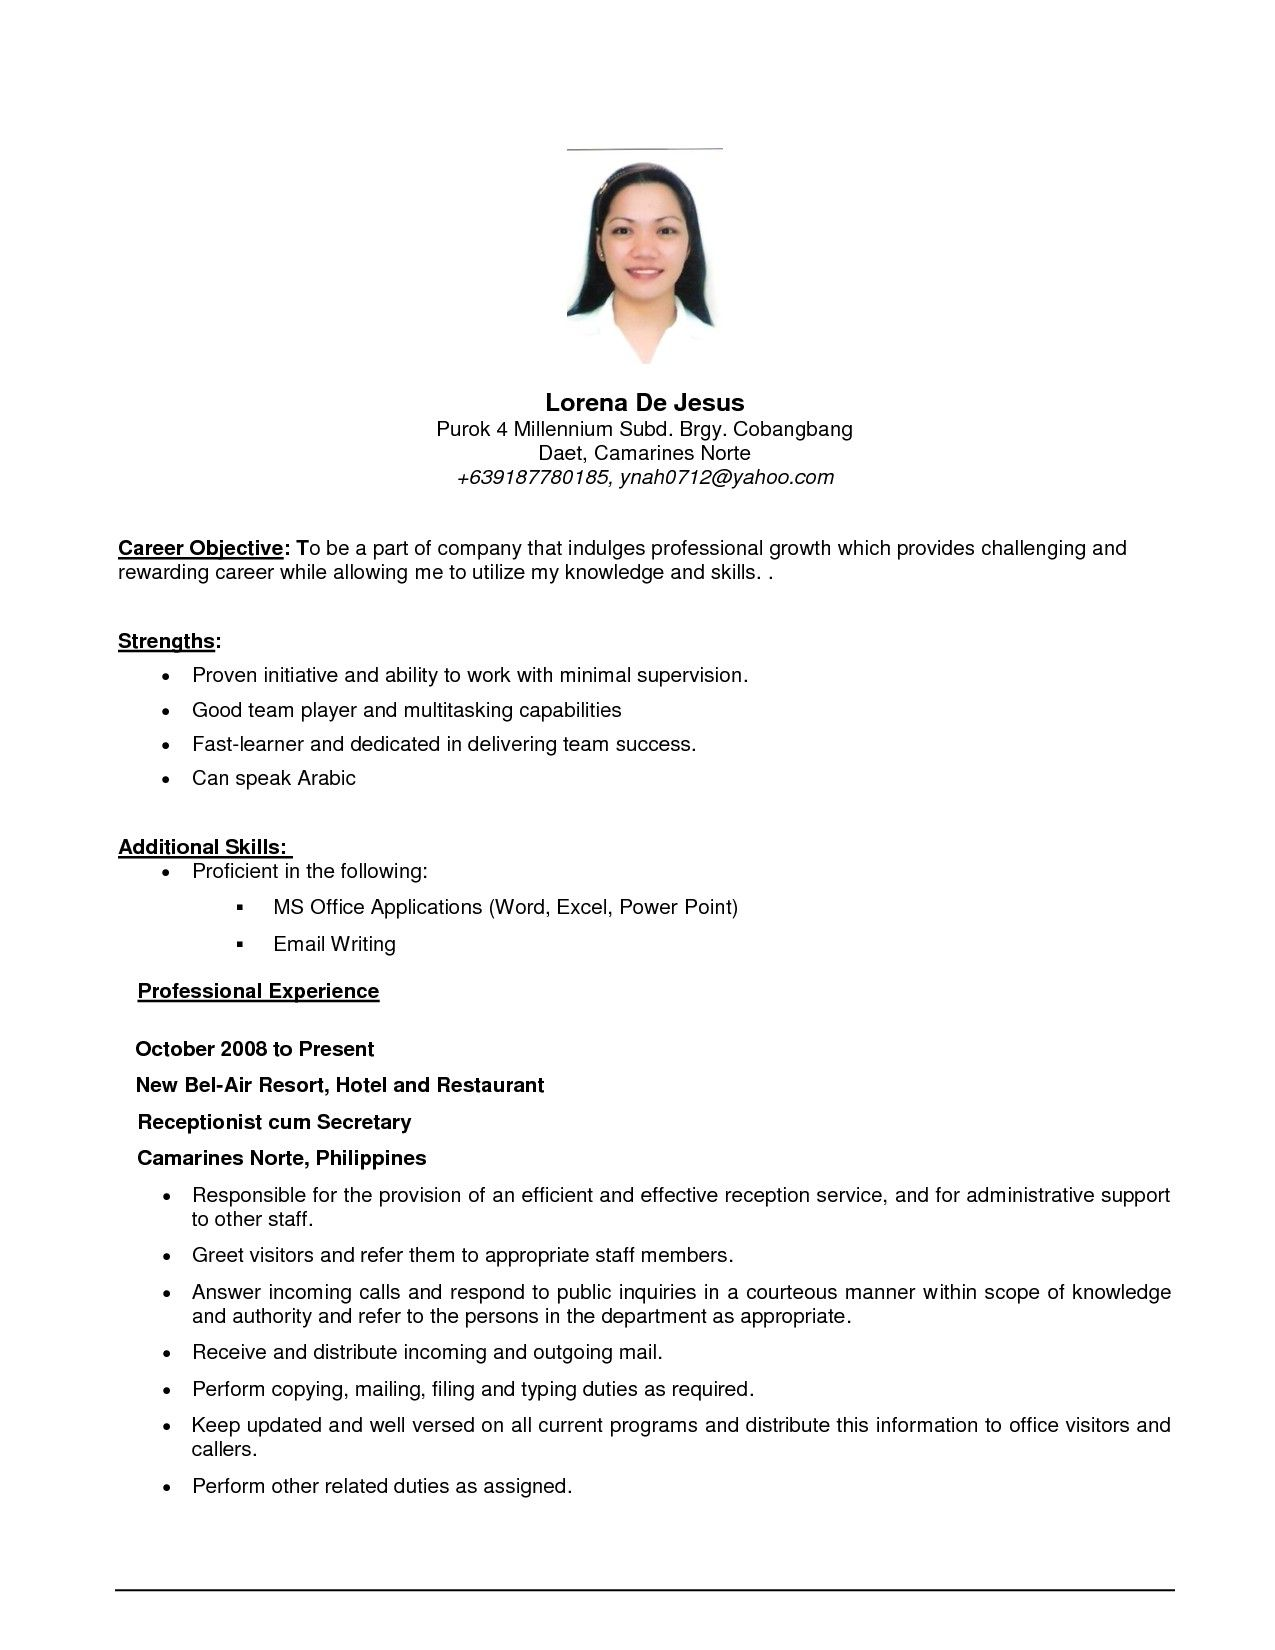 Pin By Sktrnhorn On Resume Letter Ideas Resume Objective Sample Career Objectives For Resume Resume Objective Examples